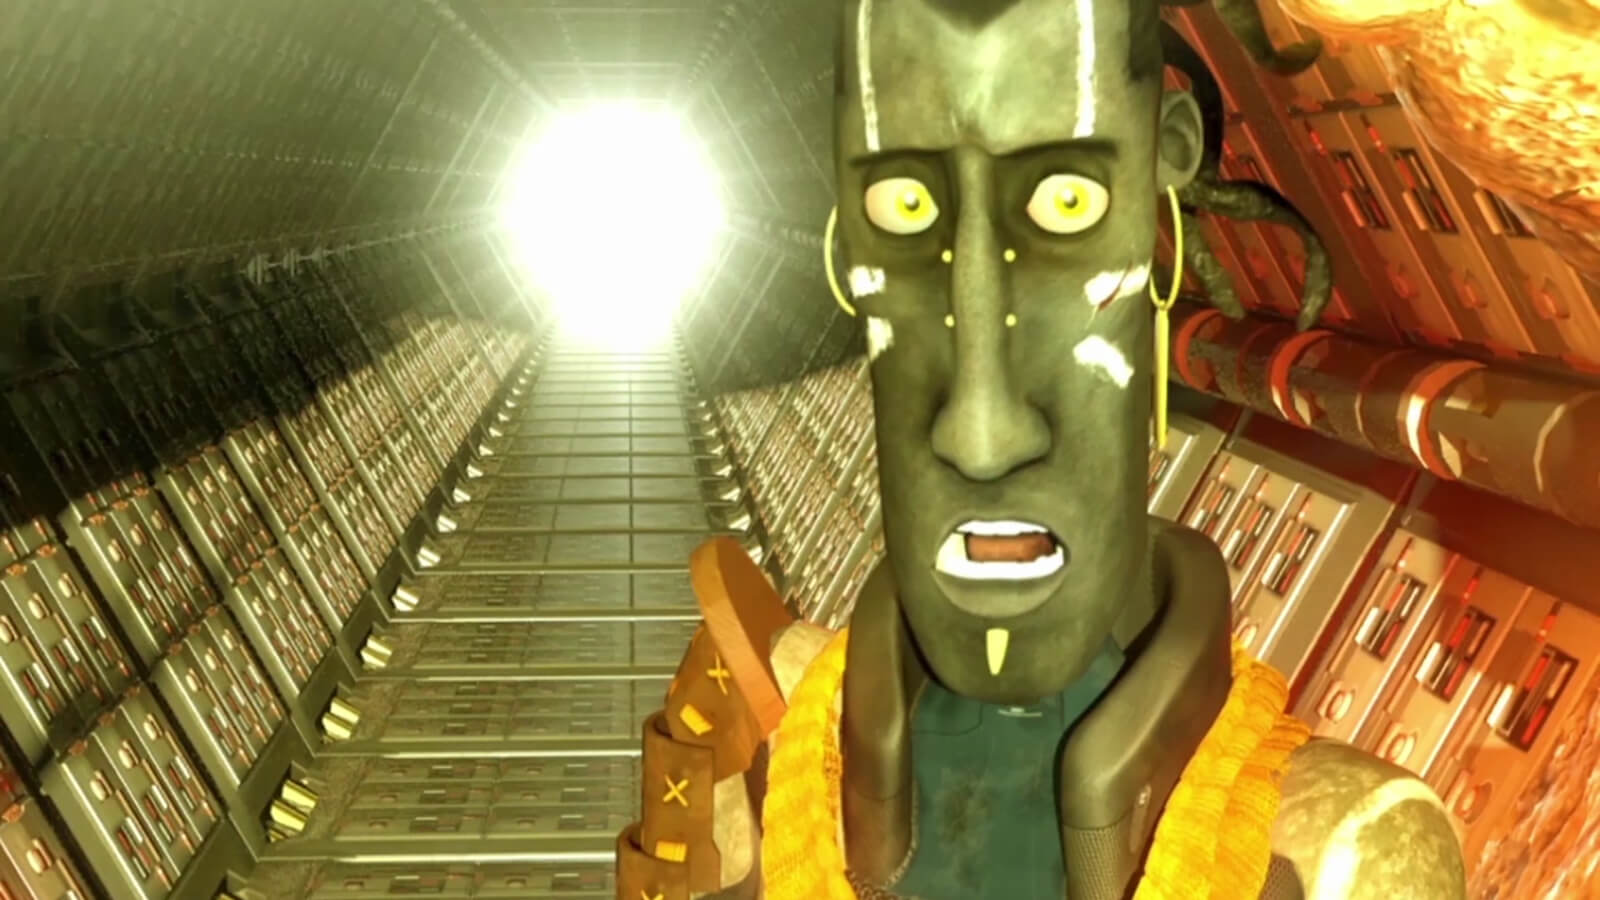 A man with a thin vertical face decorated with white body paint looks surprised staring down a hexagonal metal corridor